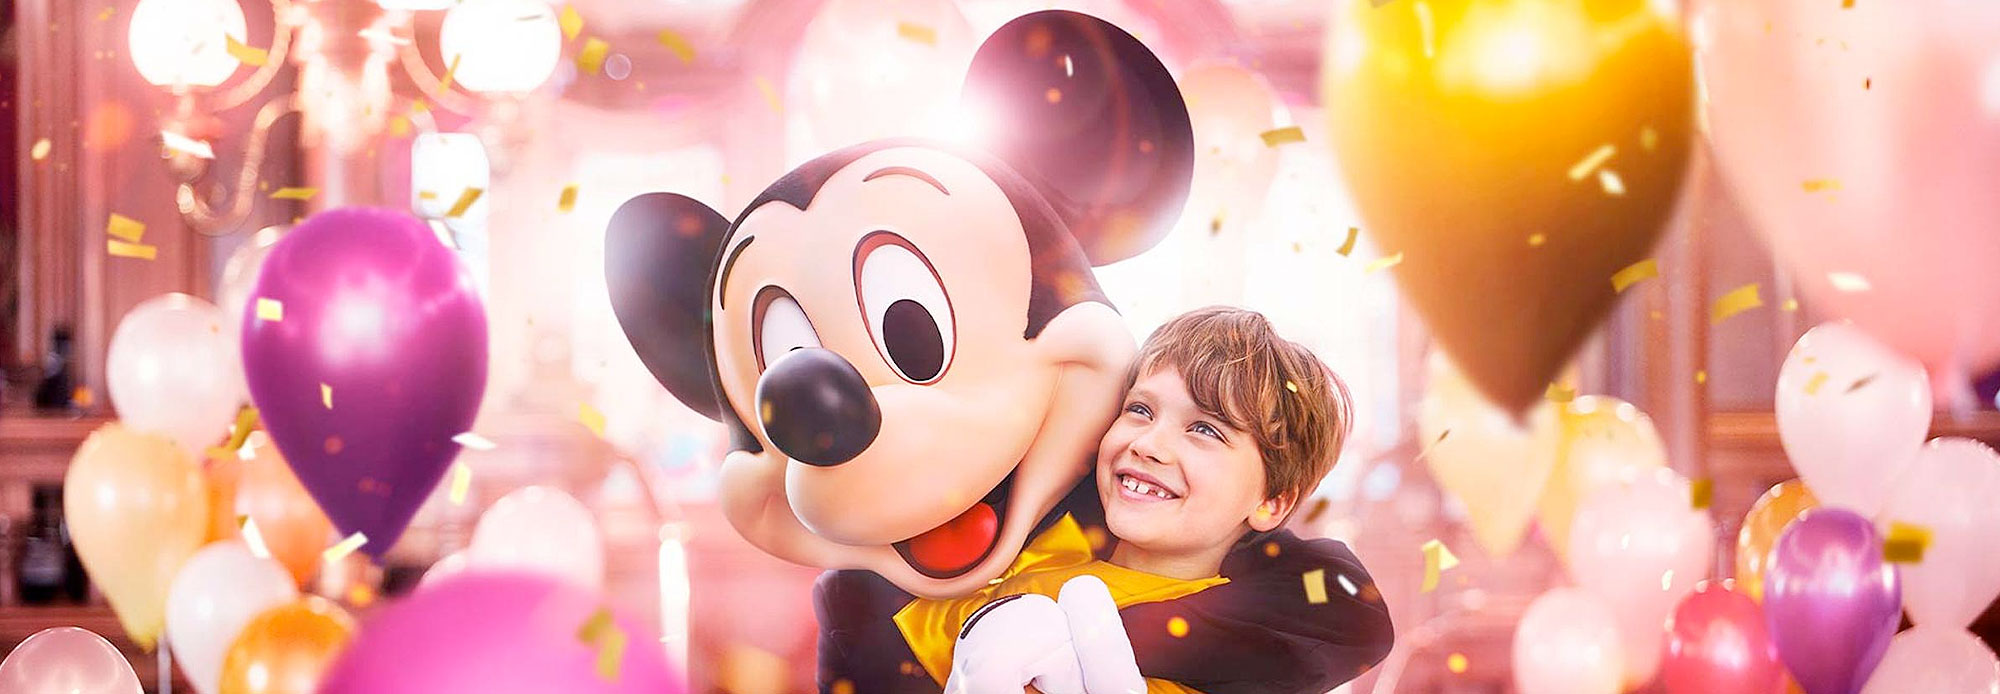 mickey gift signature experience